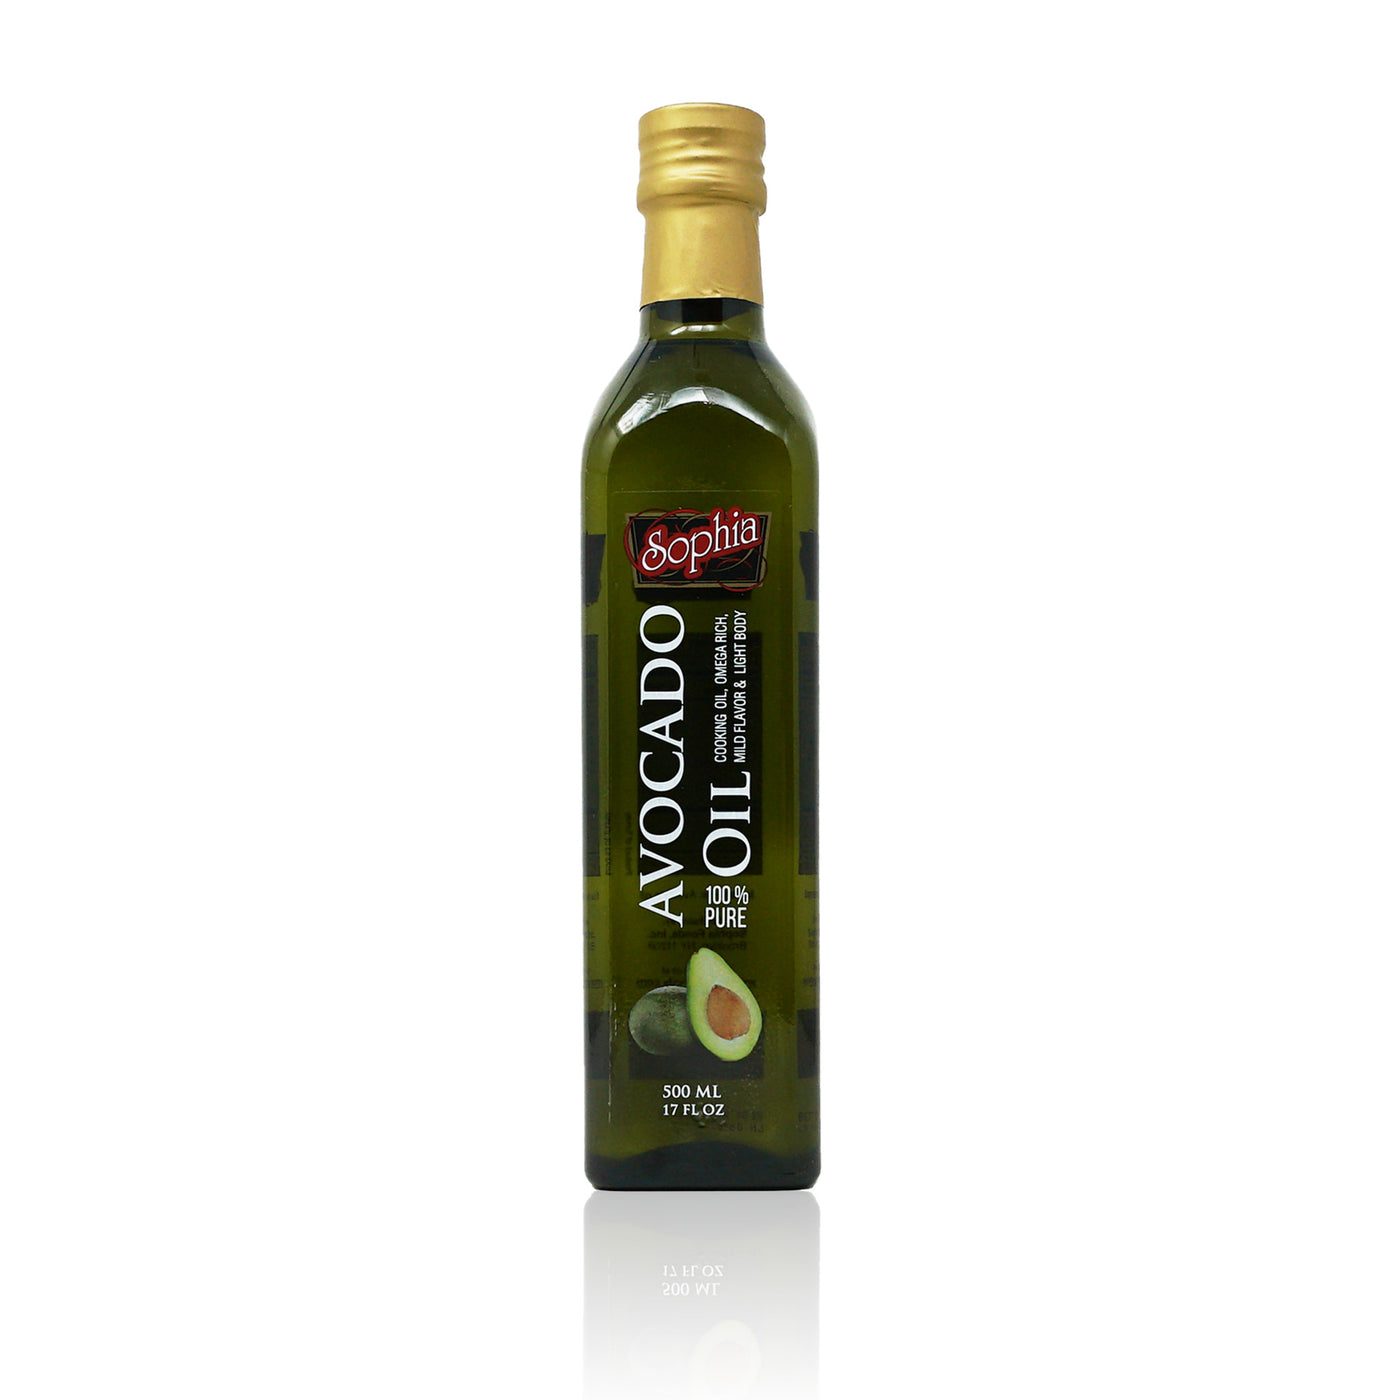 Sophia Avocado Oil